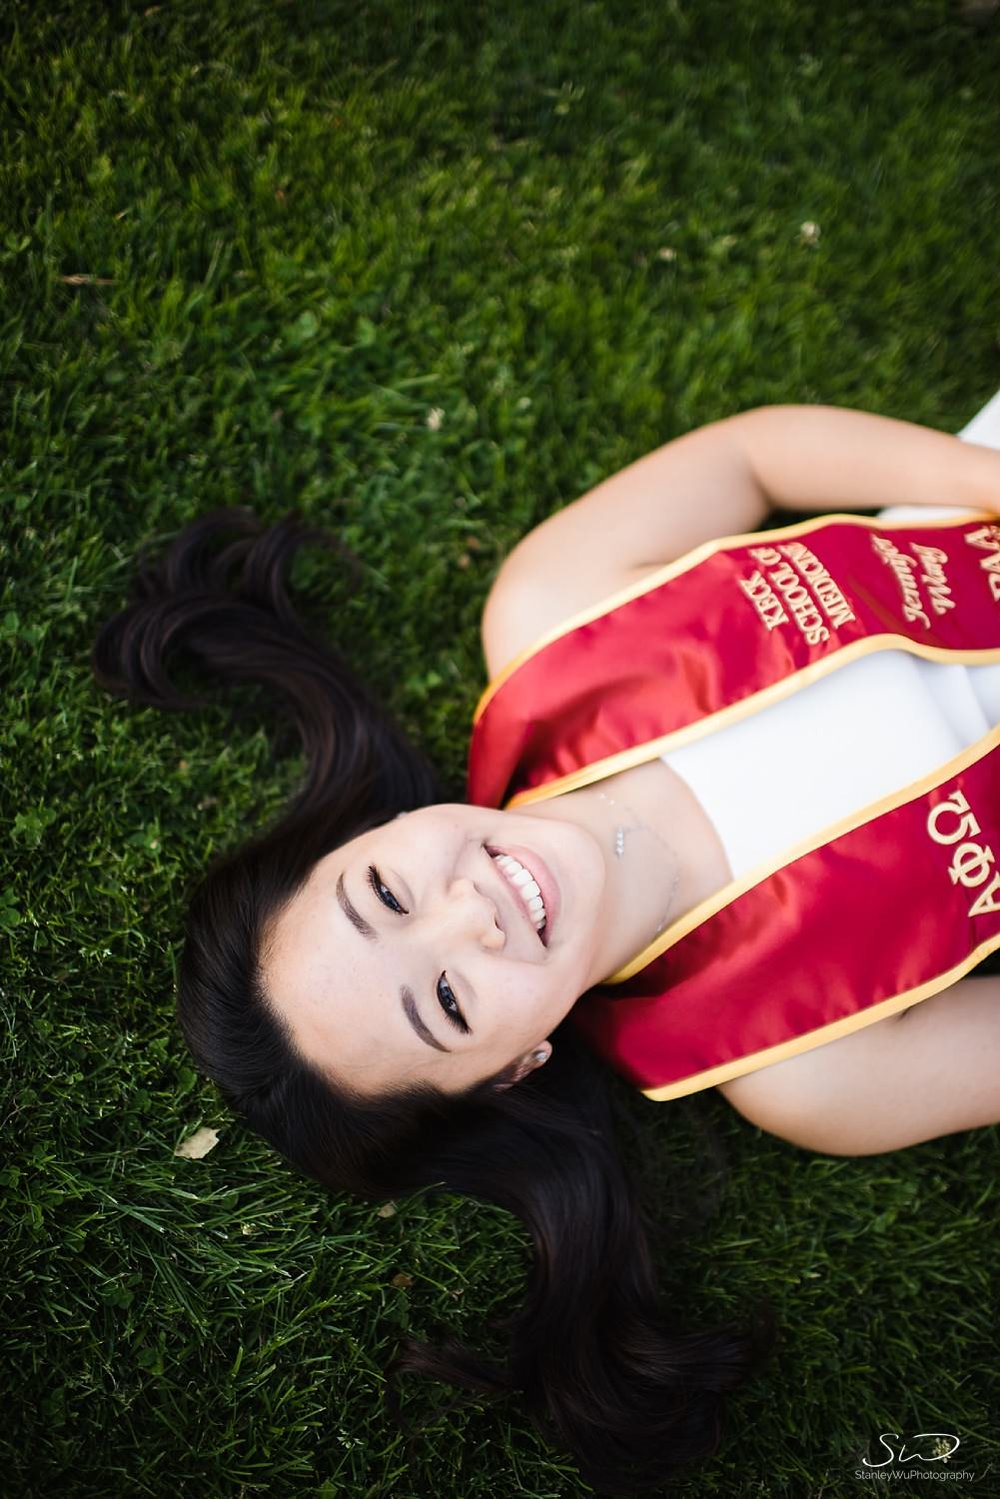 los-angeles-usc-graduation-senior-portraits_0069.jpg